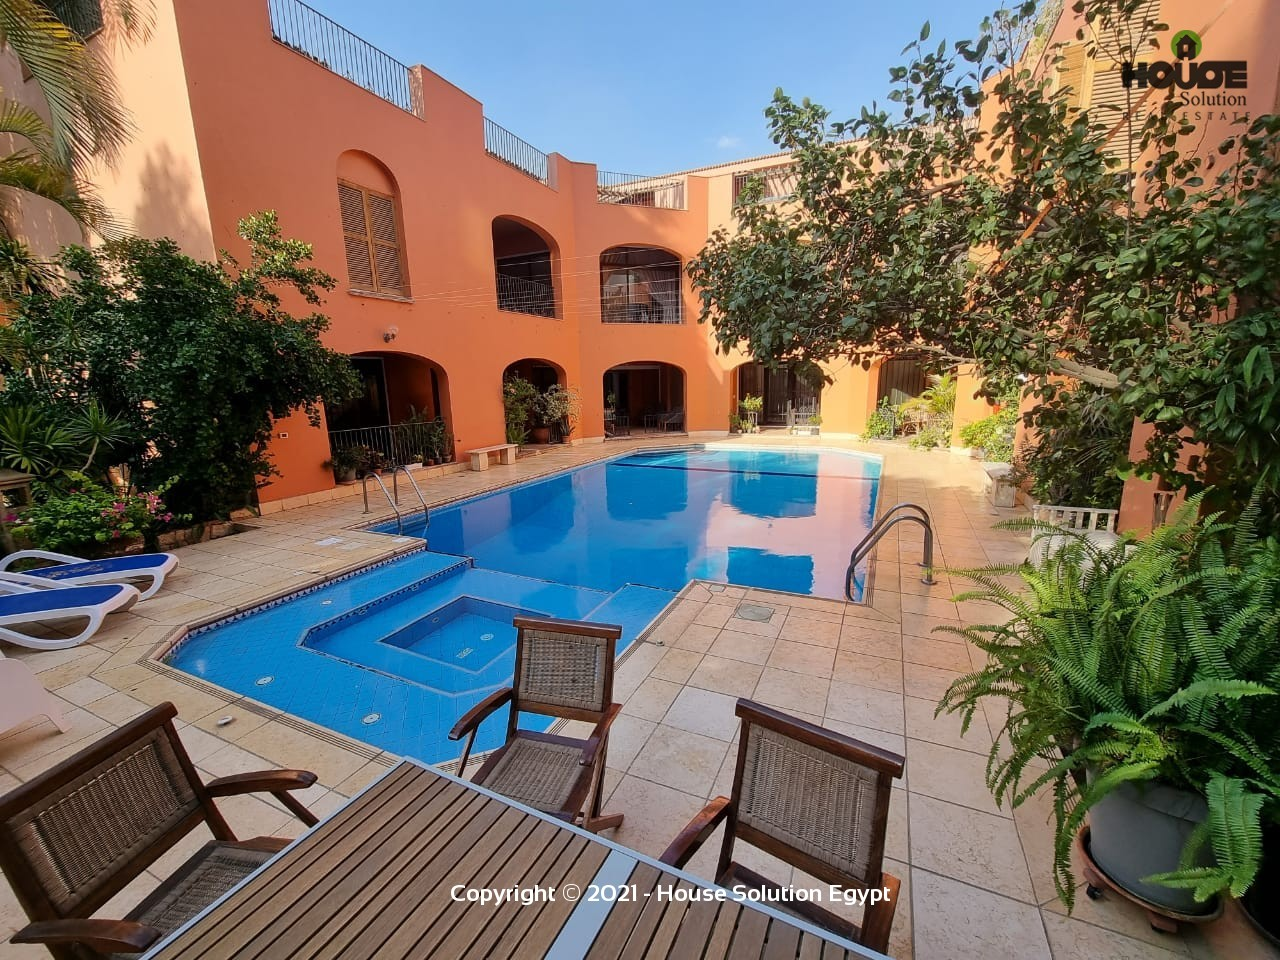 Stunning Villa For Rent With Shared Pool Located In Degla El Maadi Near Cairo American College (C.a.c) - 5018 Featured Image